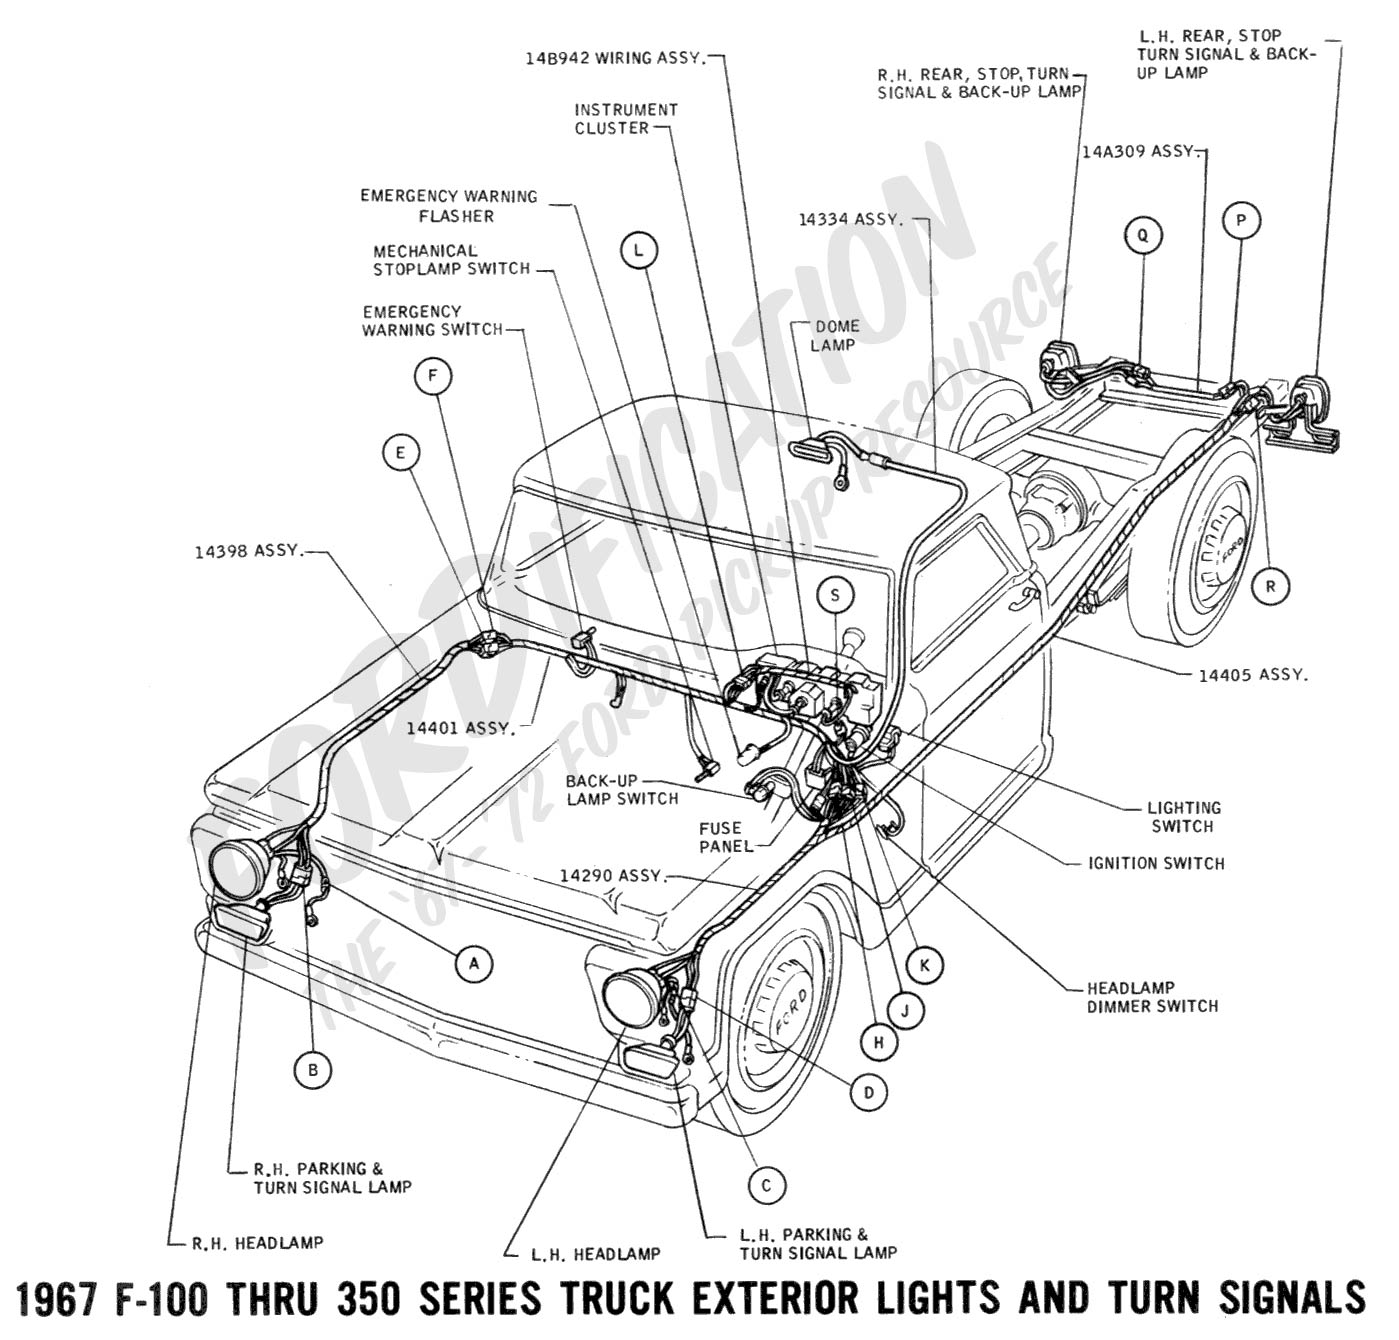 hight resolution of ford ranger fuel system diagram wiring diagram info 1990 ford ranger fuel system diagram